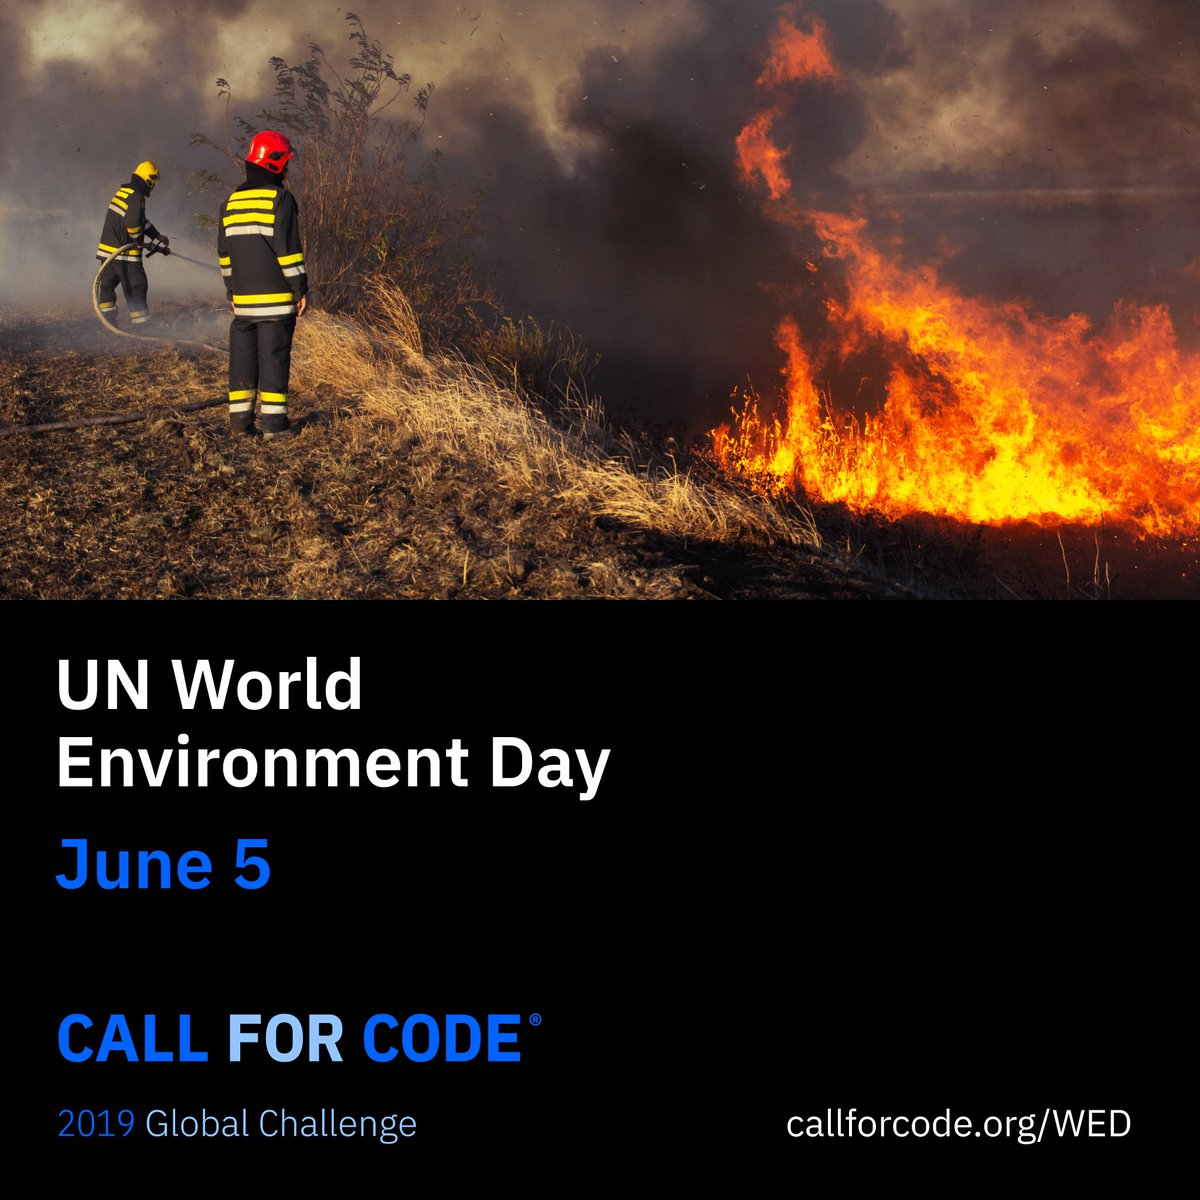 On UN #WorldEnvironmentDay join me in promoting #CallforCode, a global #TechforGood initiative that helps the most vulnerable among us with @UNHumanRights & @RedCross. Everyone deserves a safe & healthy environment after natural disasters strike. Visit: bit.ly/2JOEAod